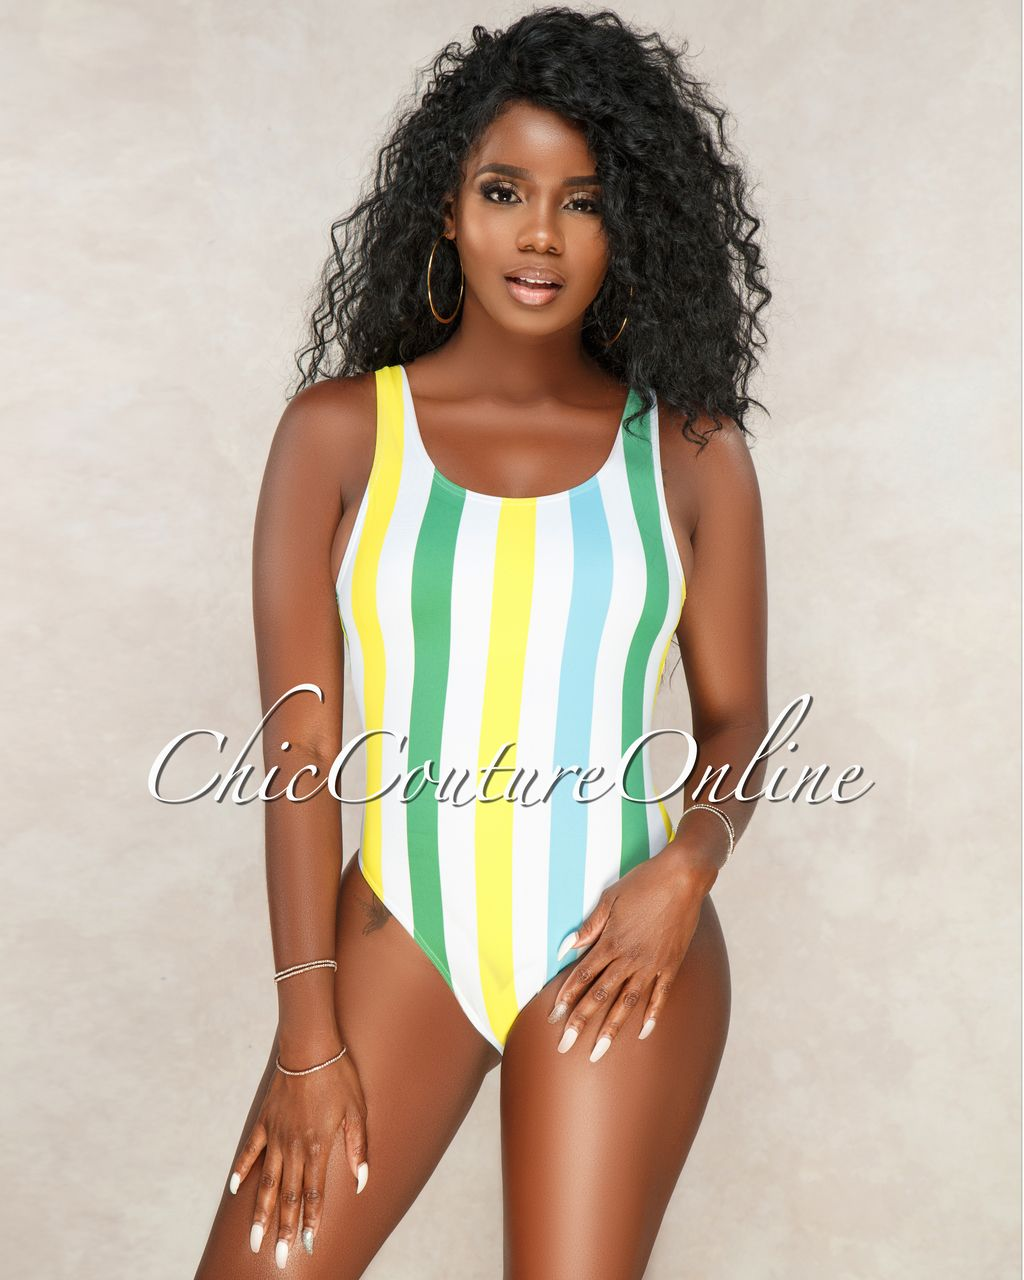 ffa23445797 Chic Couture Online - Oriana Off White Blue Yellow Stripes One Piece  Swimsuit, (https